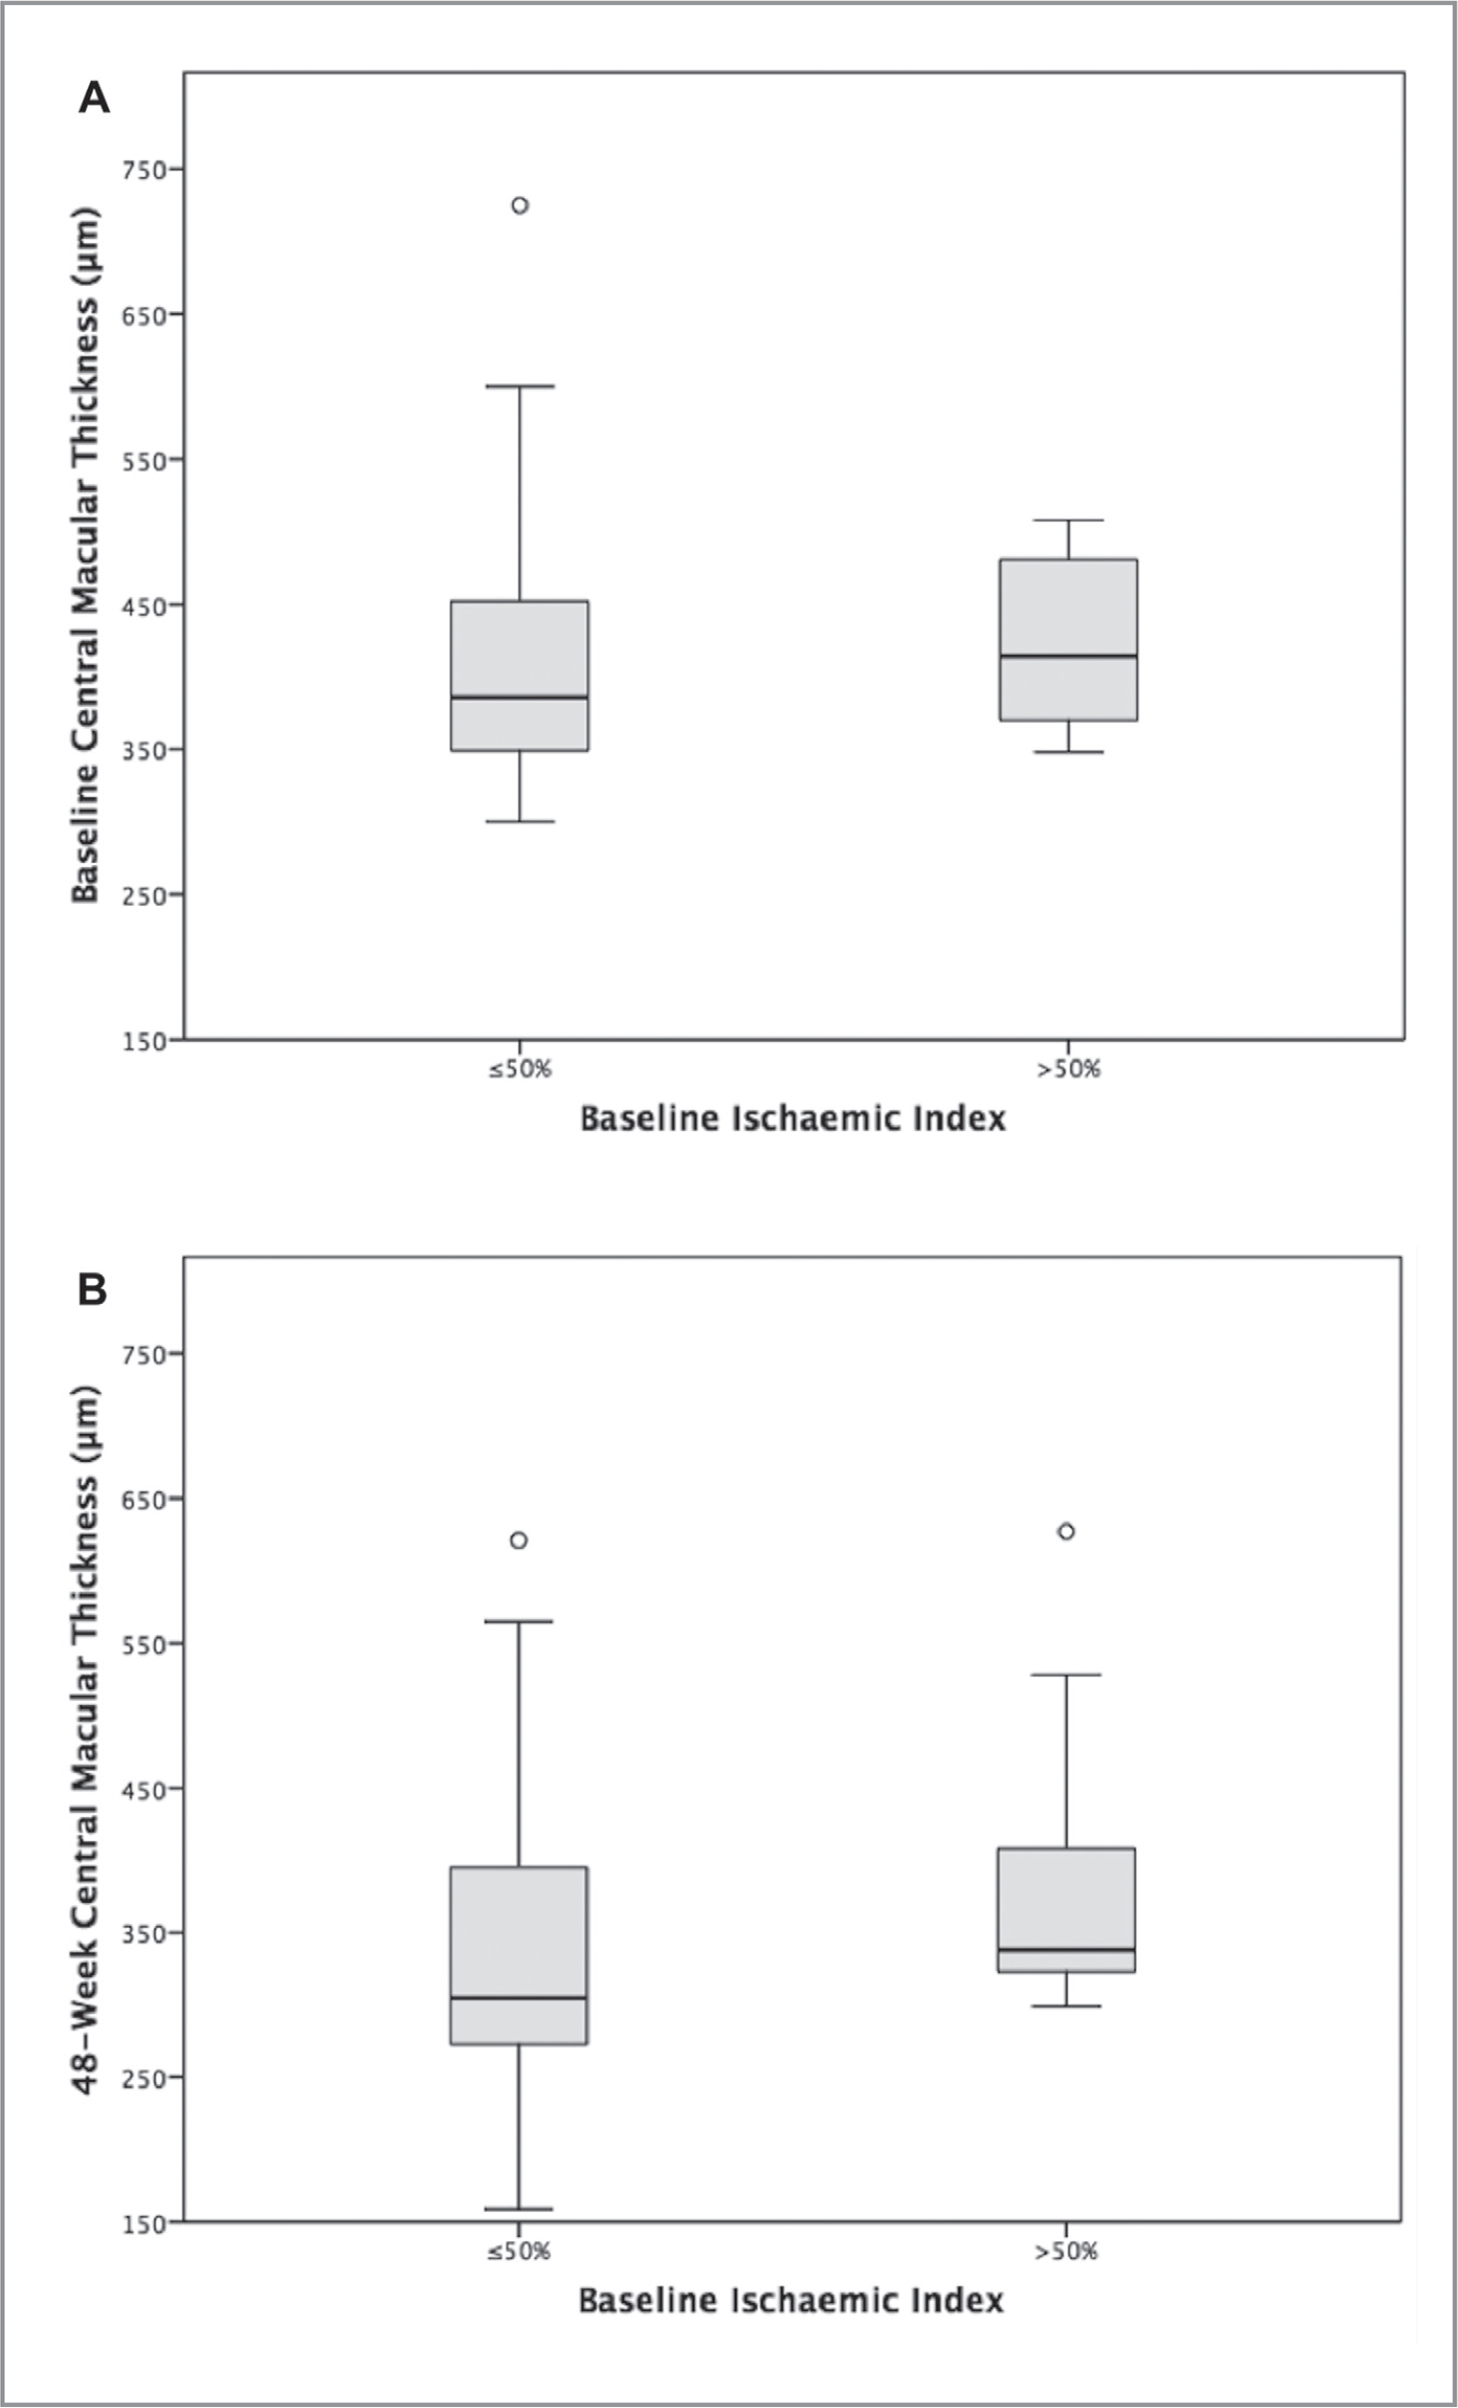 Boxplot showing baseline (A) and 48-week (B) central macular thickness grouped by baseline ischemic index.